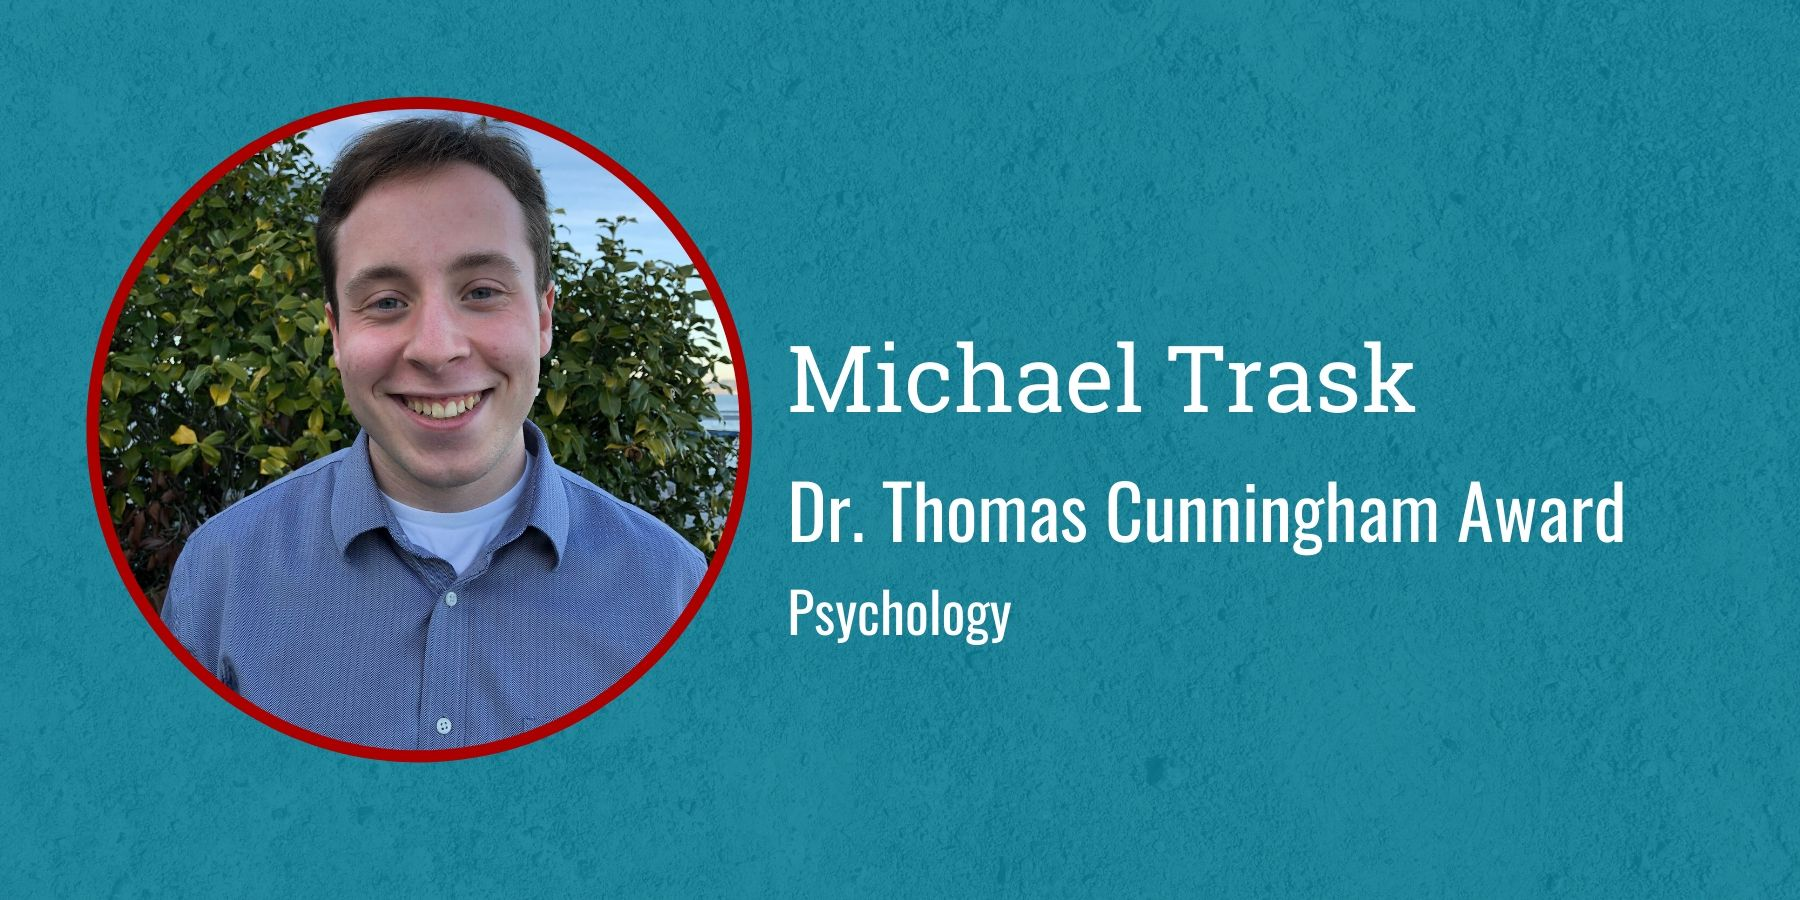 Photo of Michael Trask and text Dr. Thomas Cunningham award, Psychology